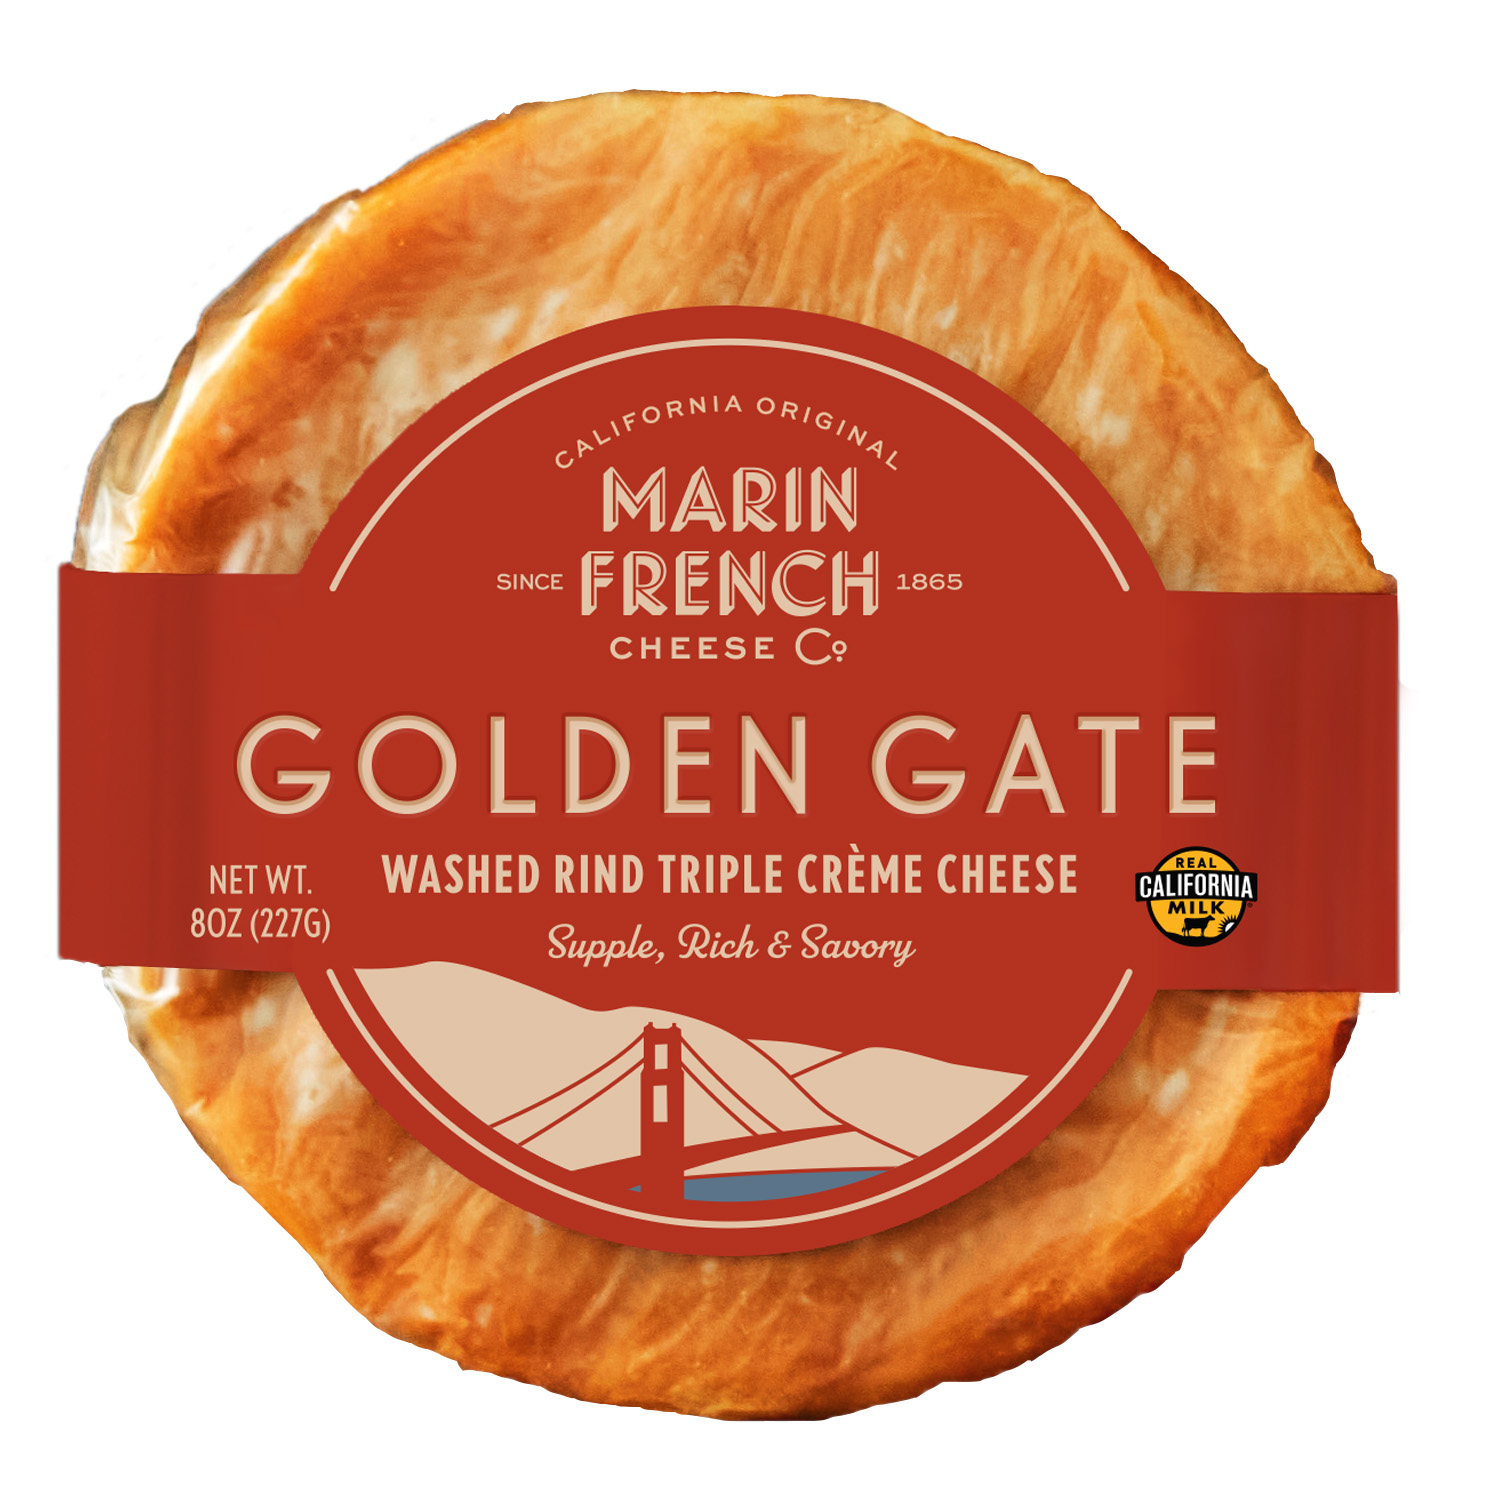 Golden Gate Washed Rind Triple Crème Cheese